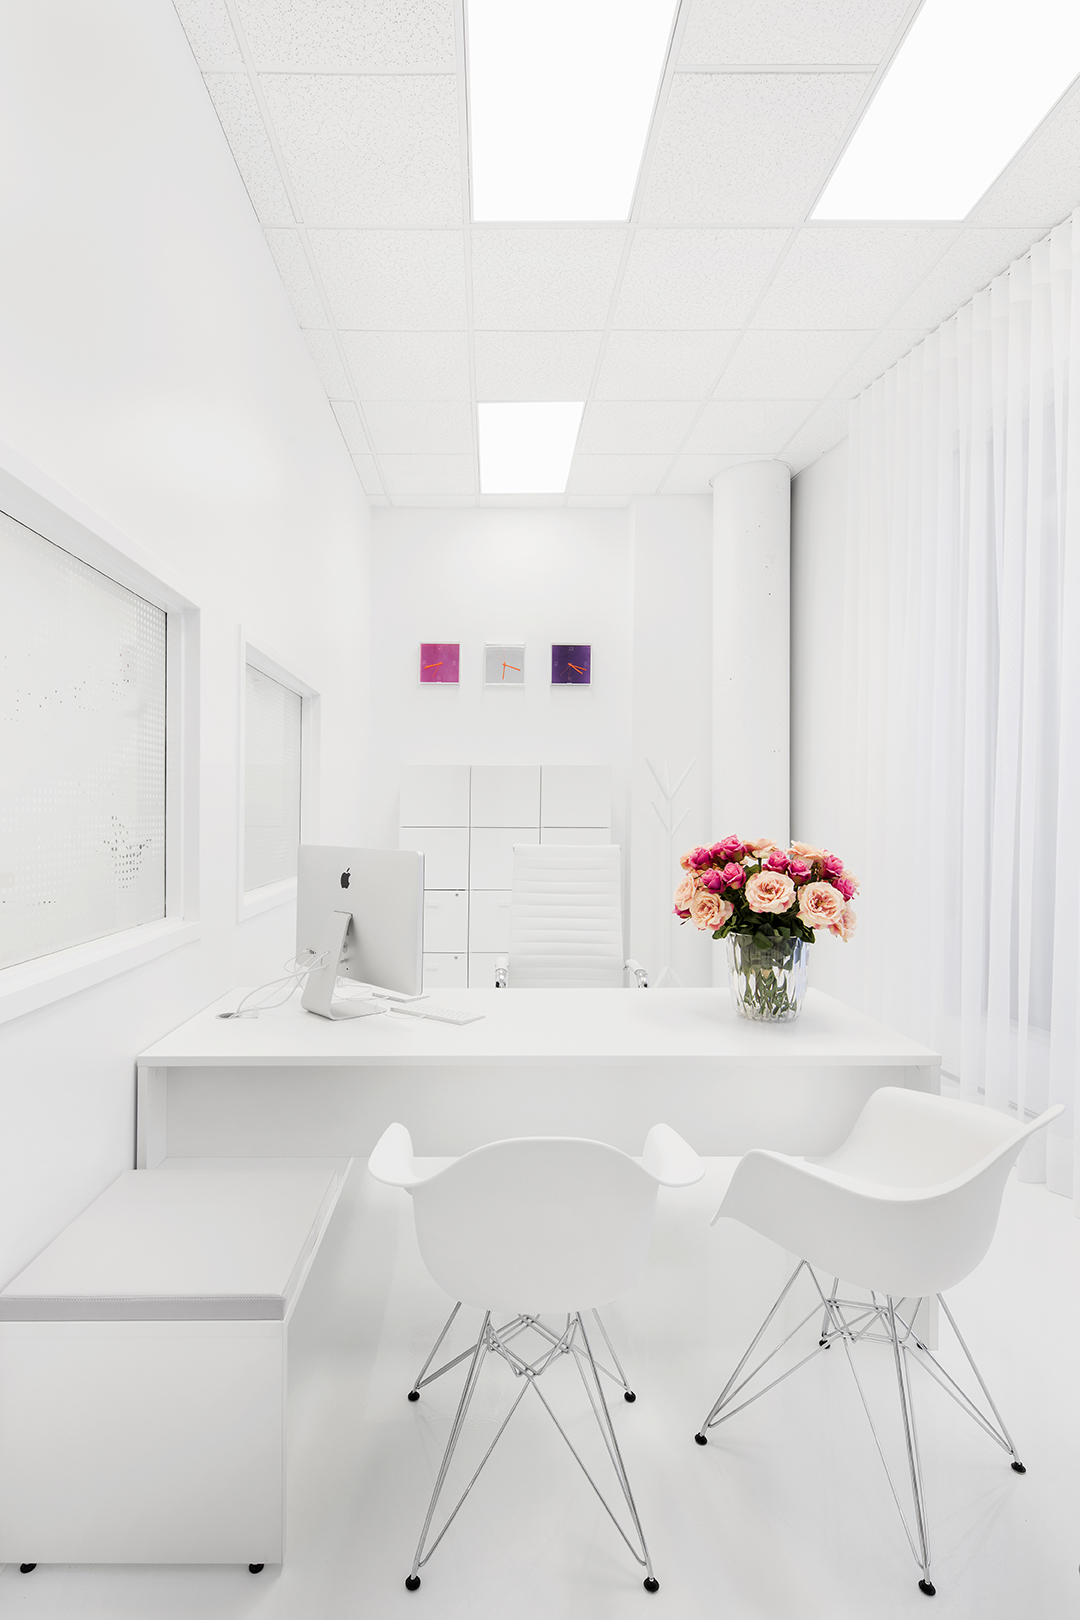 Univers_NuFace_2.3_ADHOC_architectes_©Adrien_Williams_08